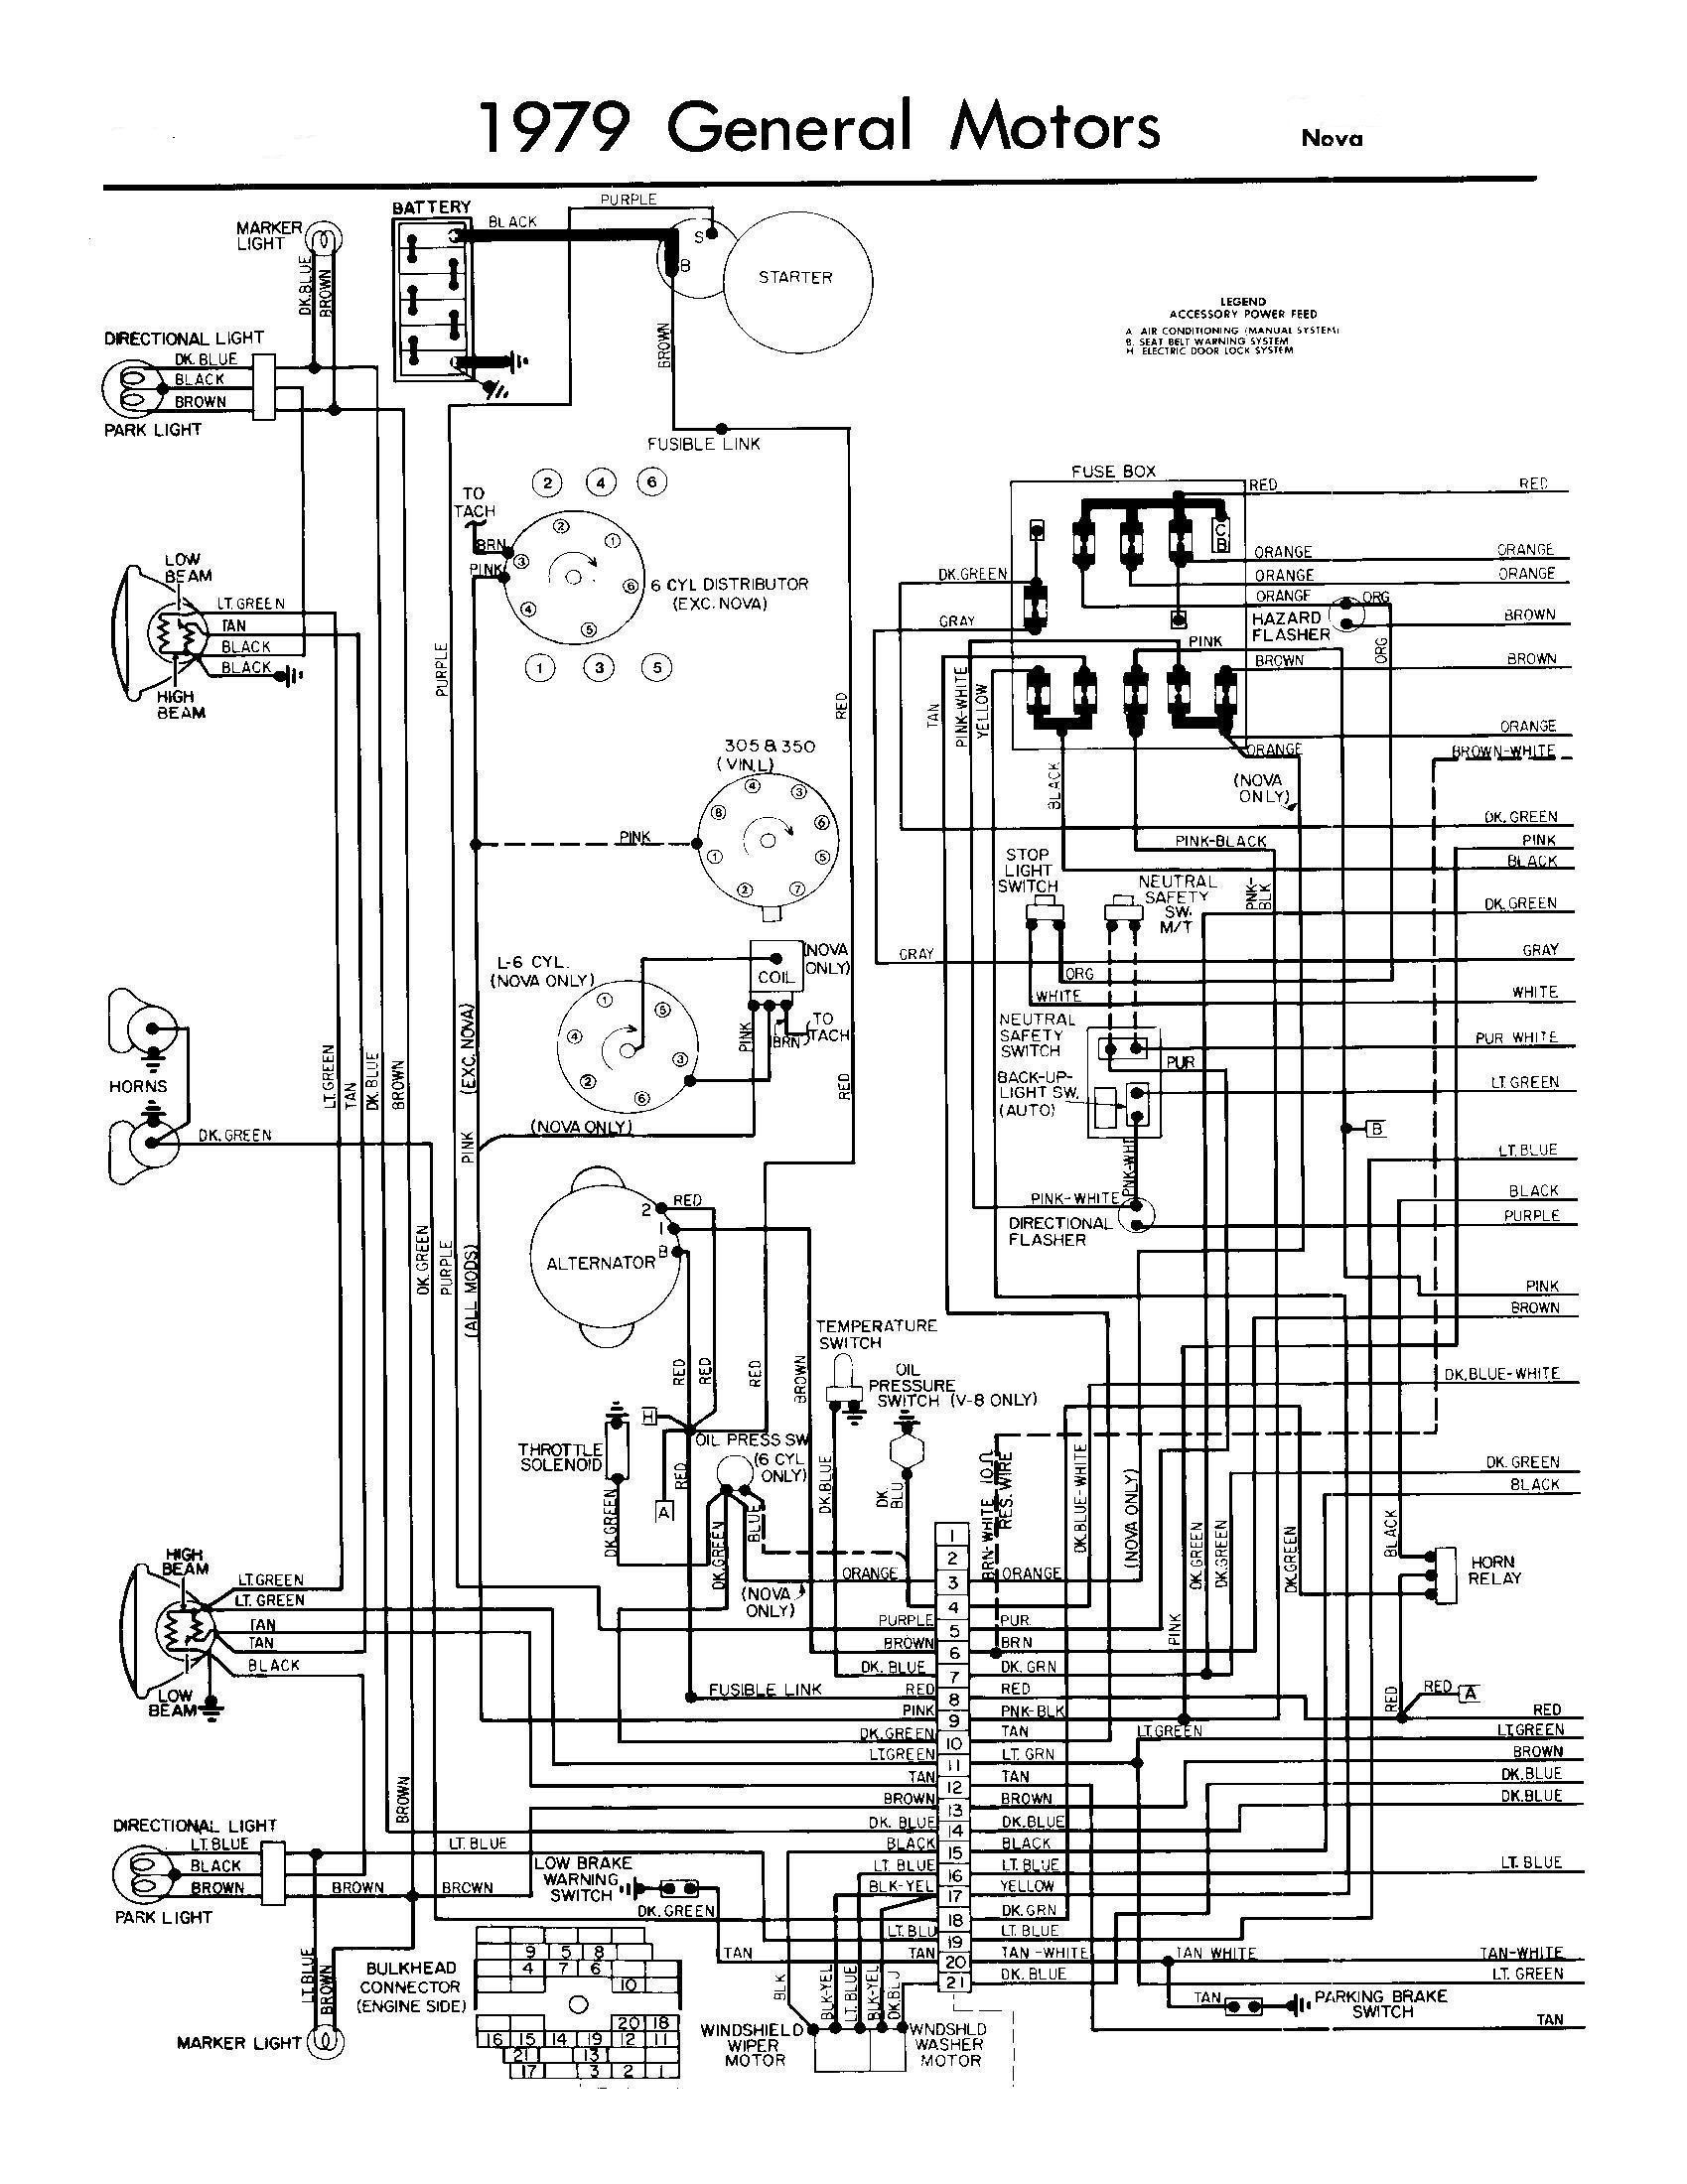 freightliner alternator wiring diagram index listing of wiring1977 camaro neutral safety switch wiring diagram wiring diagramwiring diagram for 1987 chevy truck wiring diagram